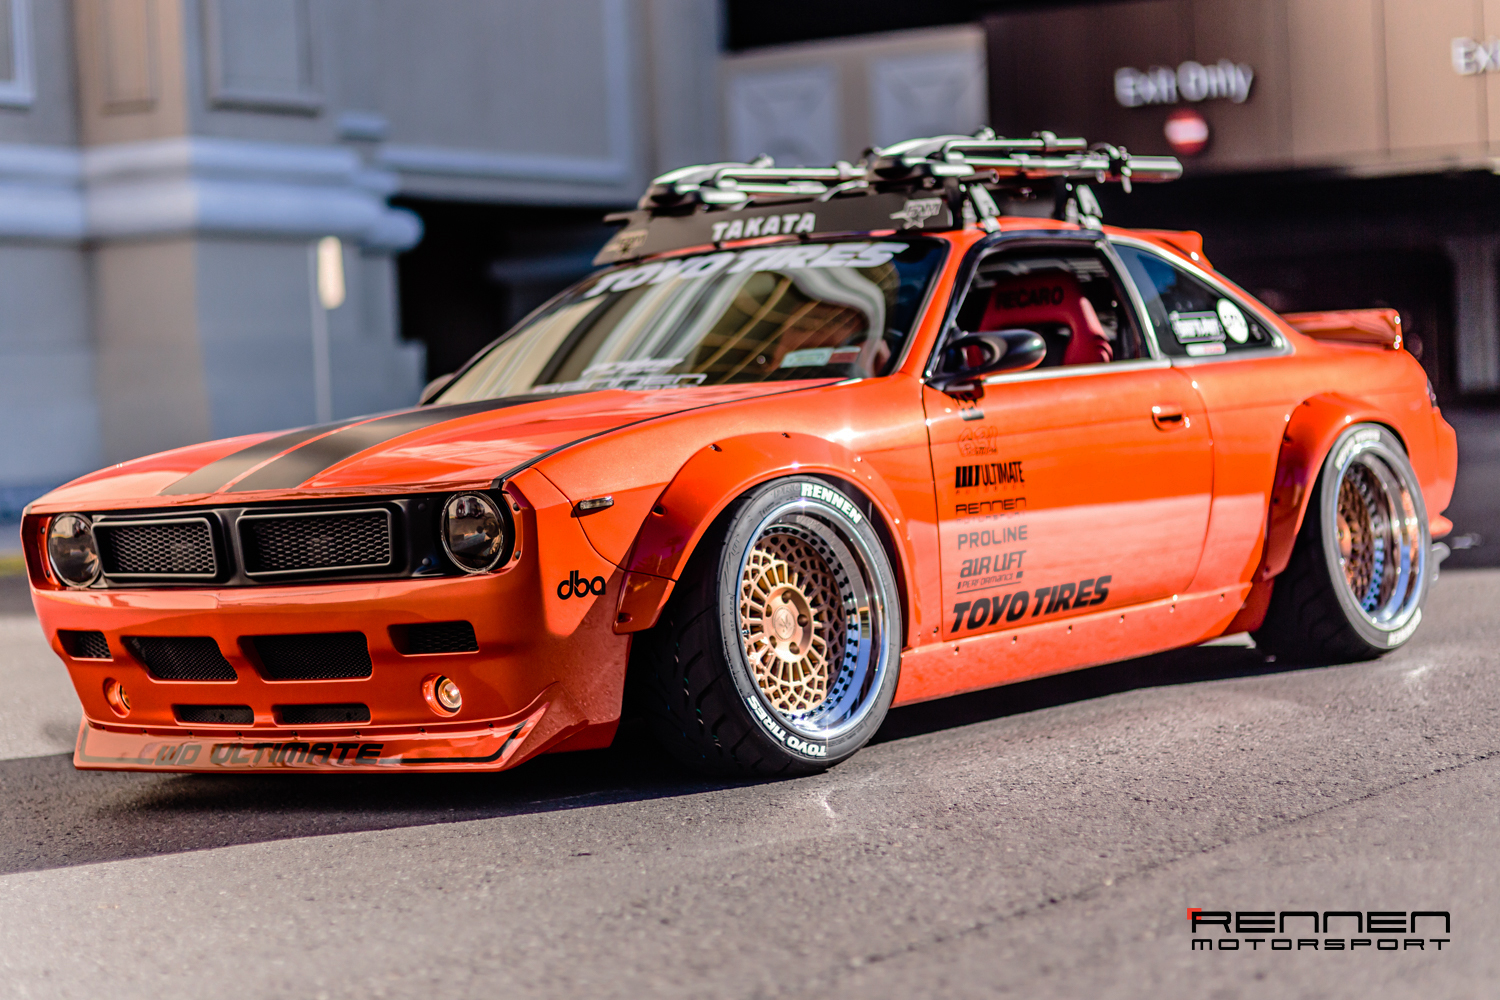 hight resolution of out of the shadows nissan s 240sx s14 kouki gets a facelift courtesy of rennen wd ultimate